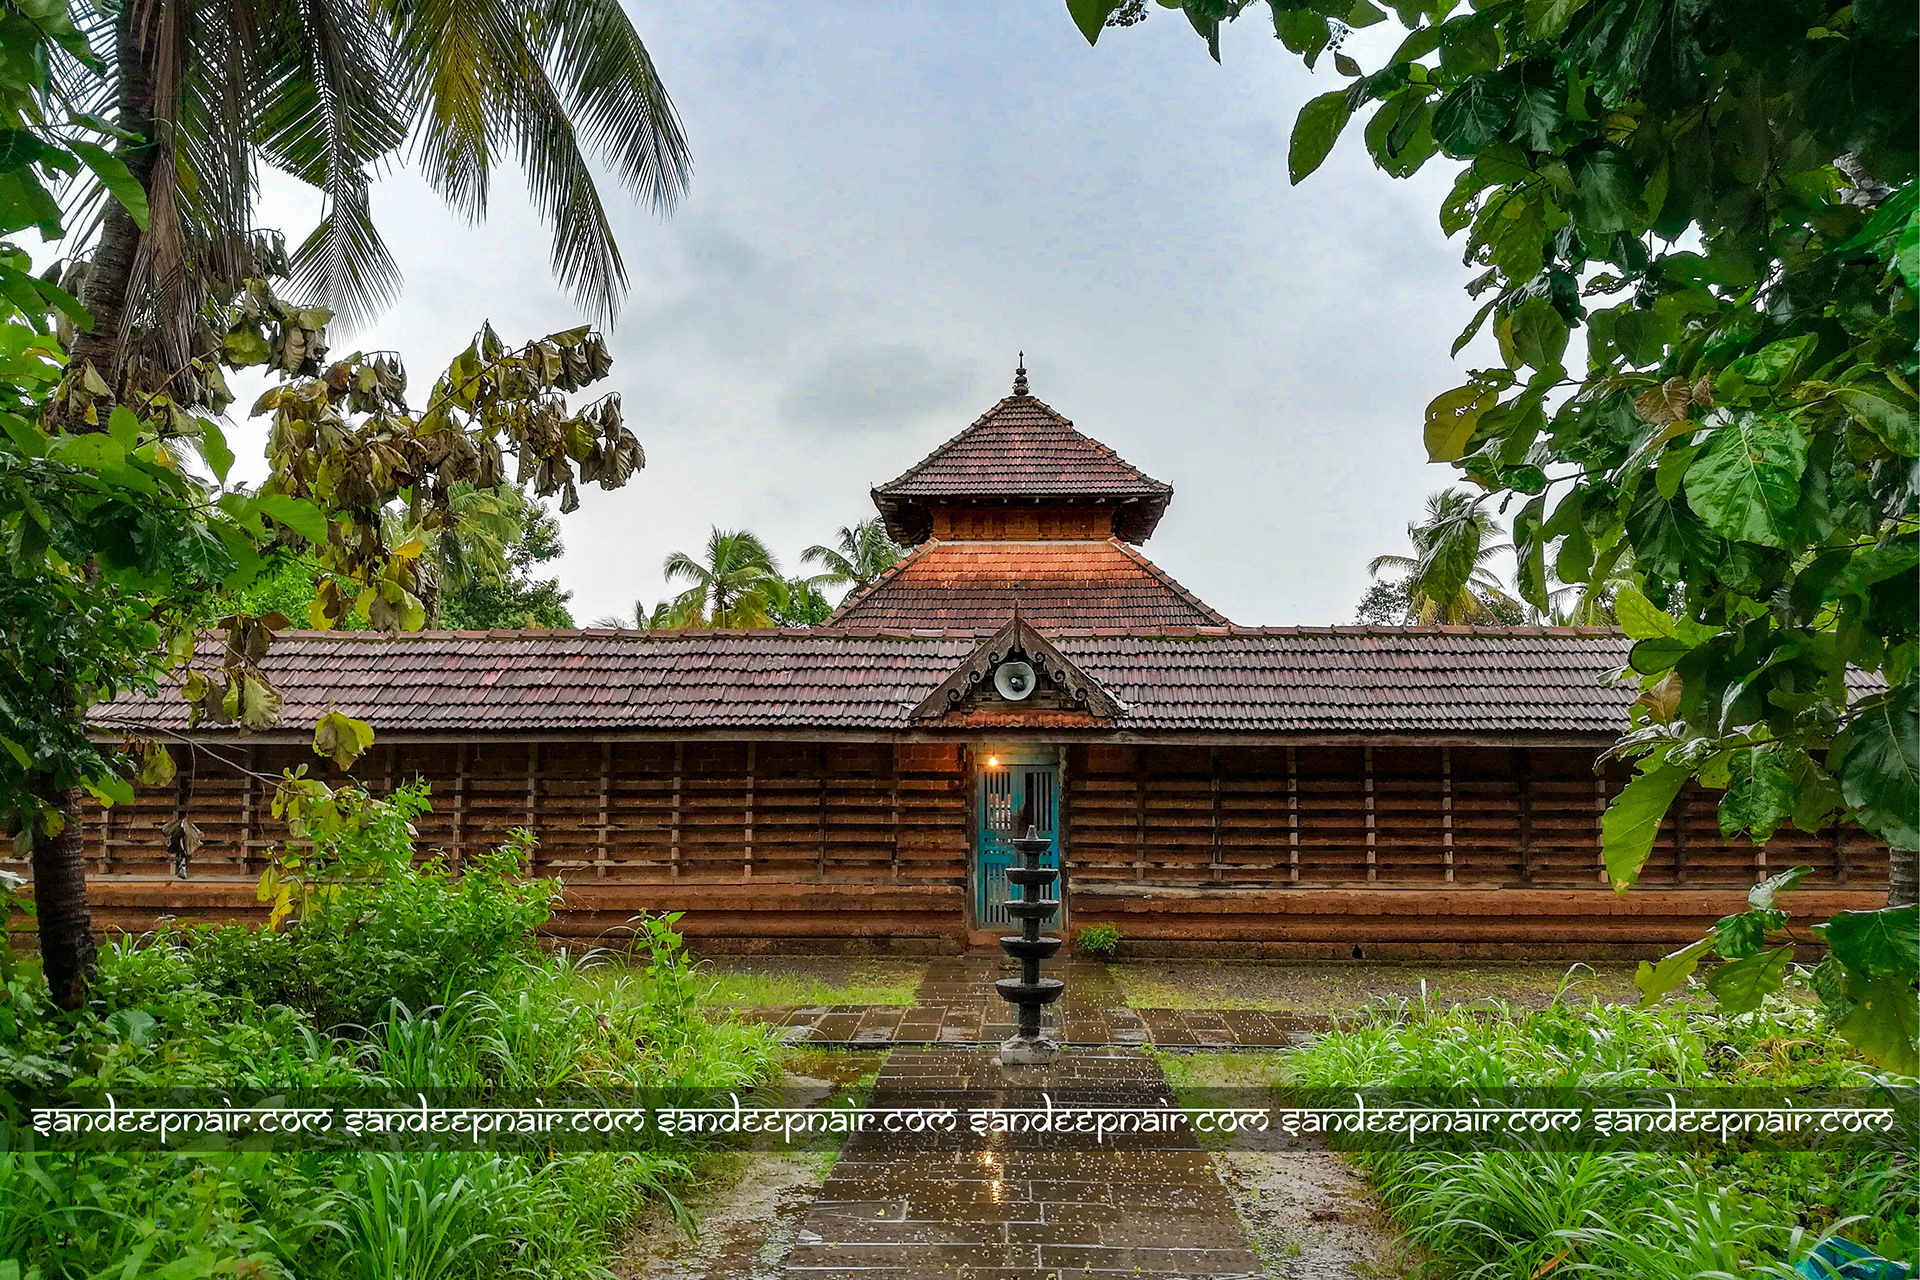 The Mohini Temple in Kerala